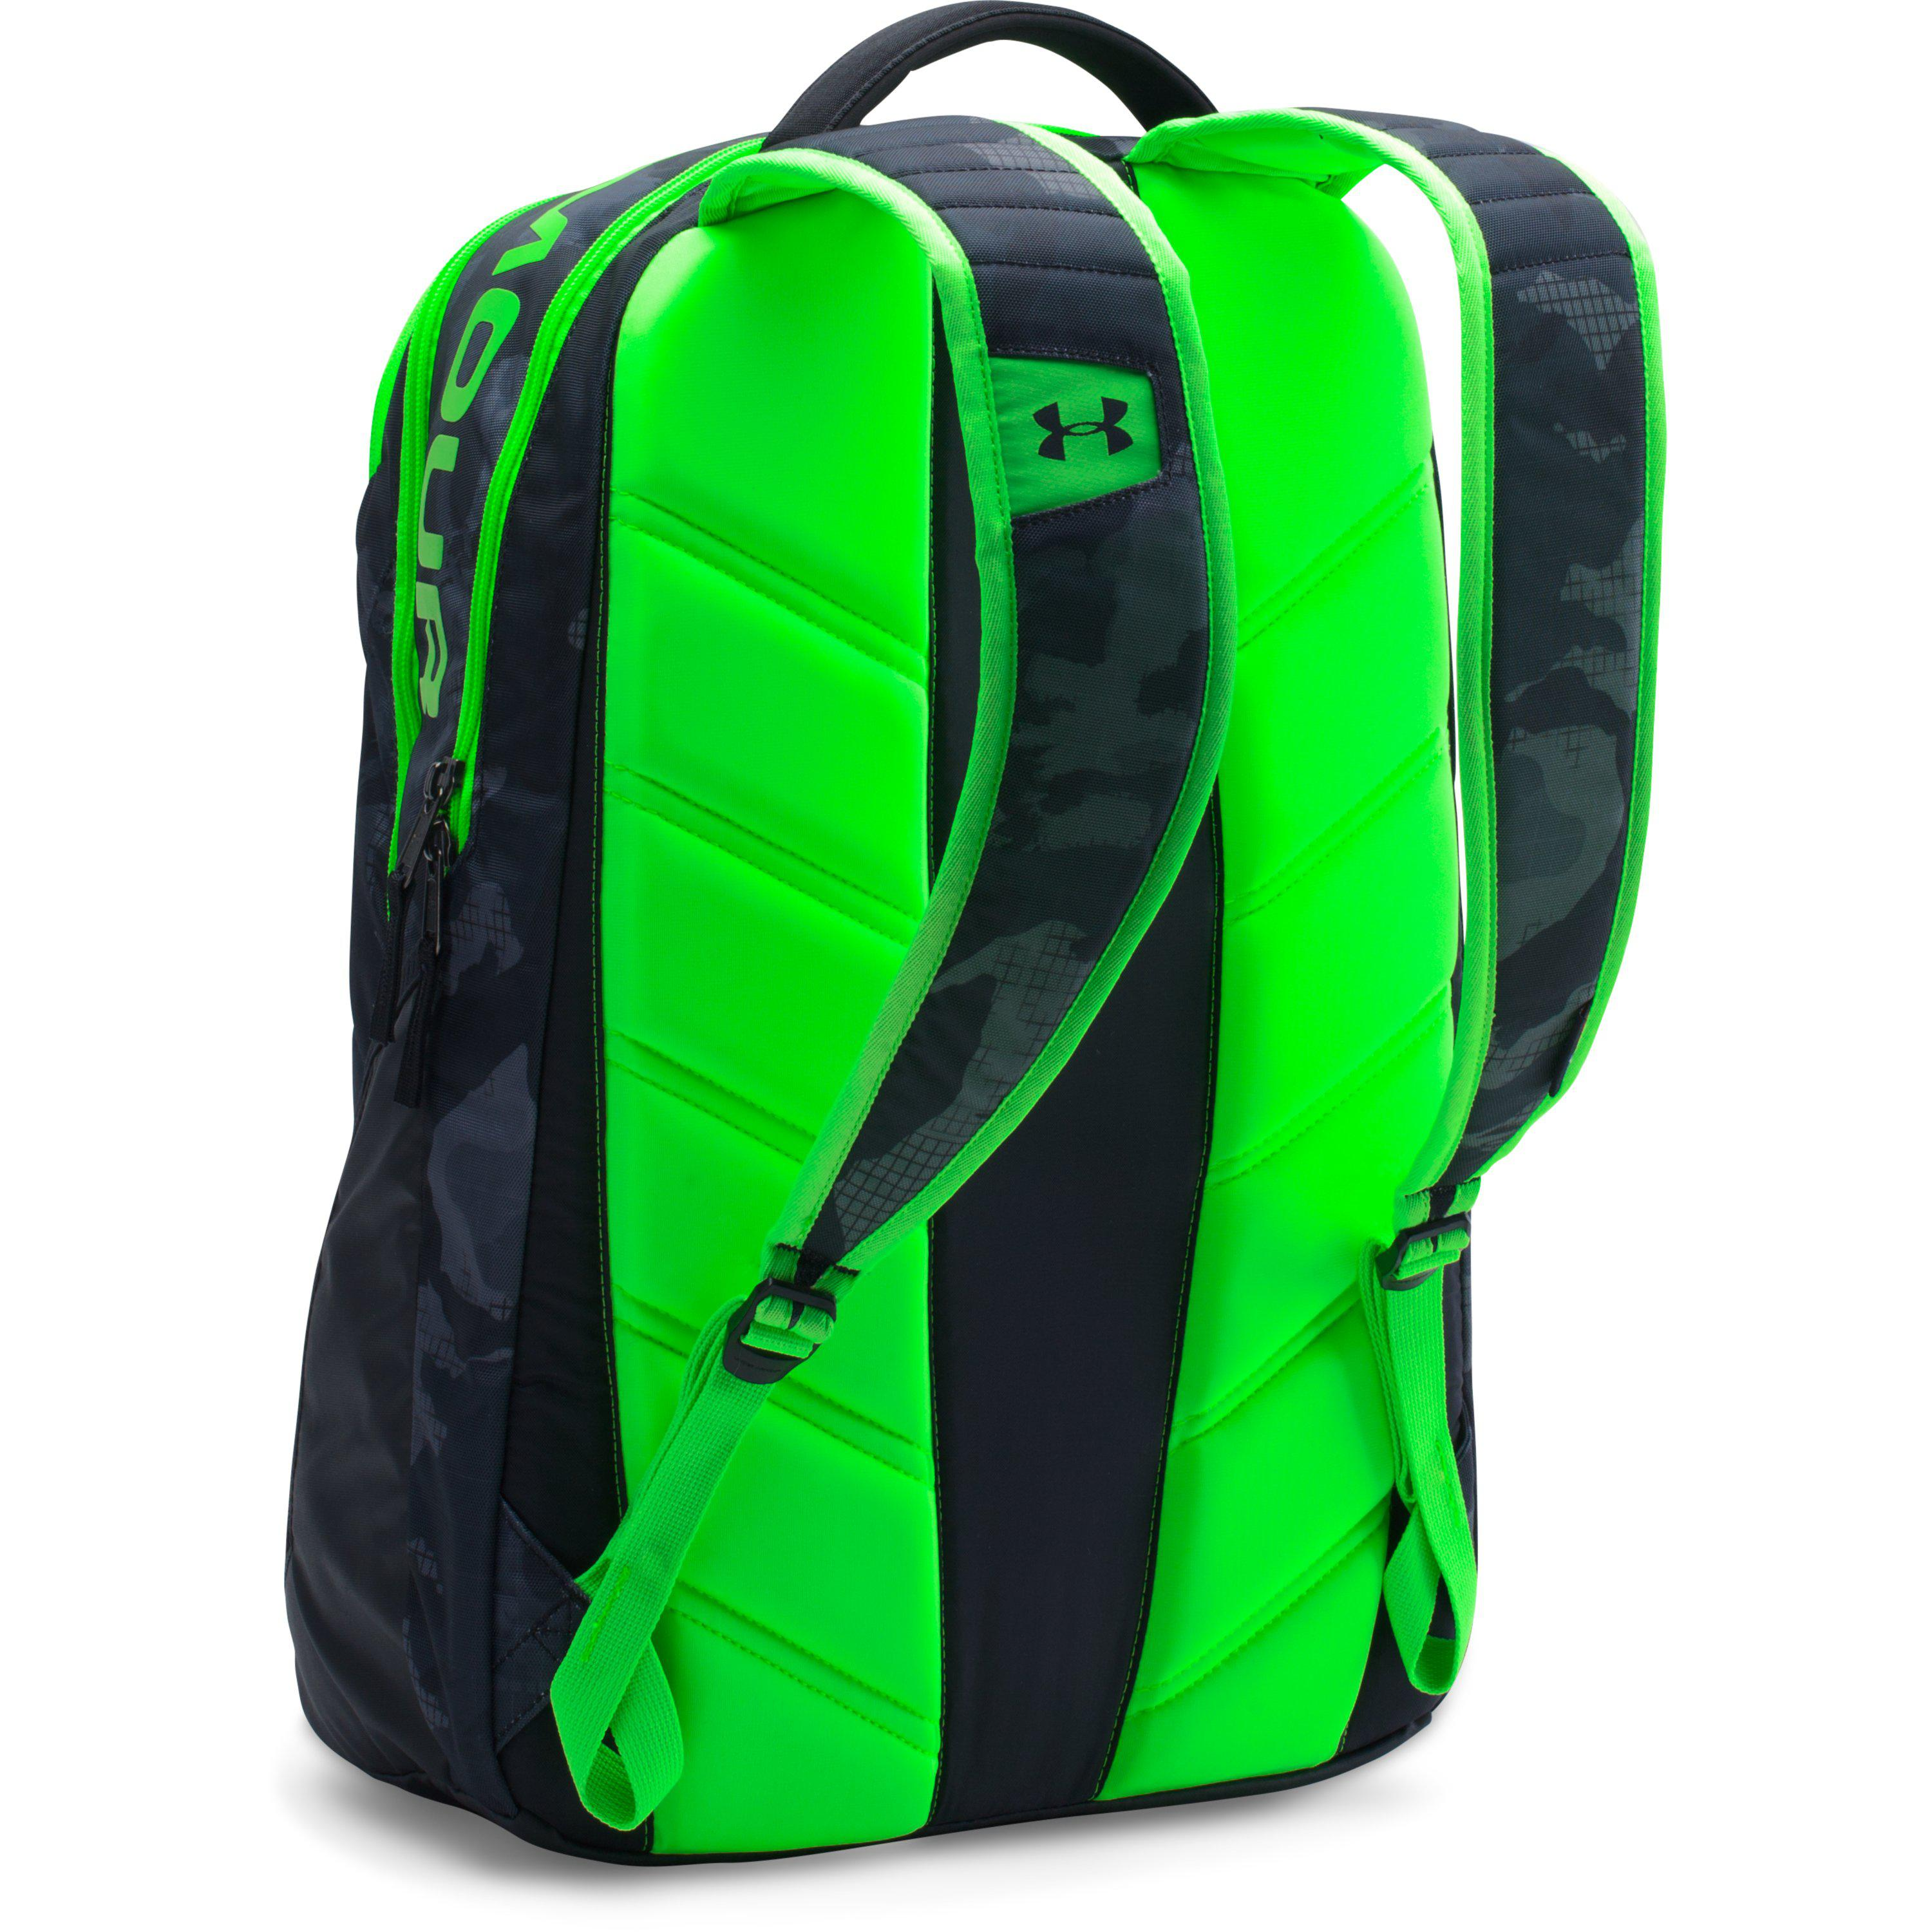 340e511b8859 Lyst - Under Armour Ua Storm Big Logo Iv Backpack in Green for Men